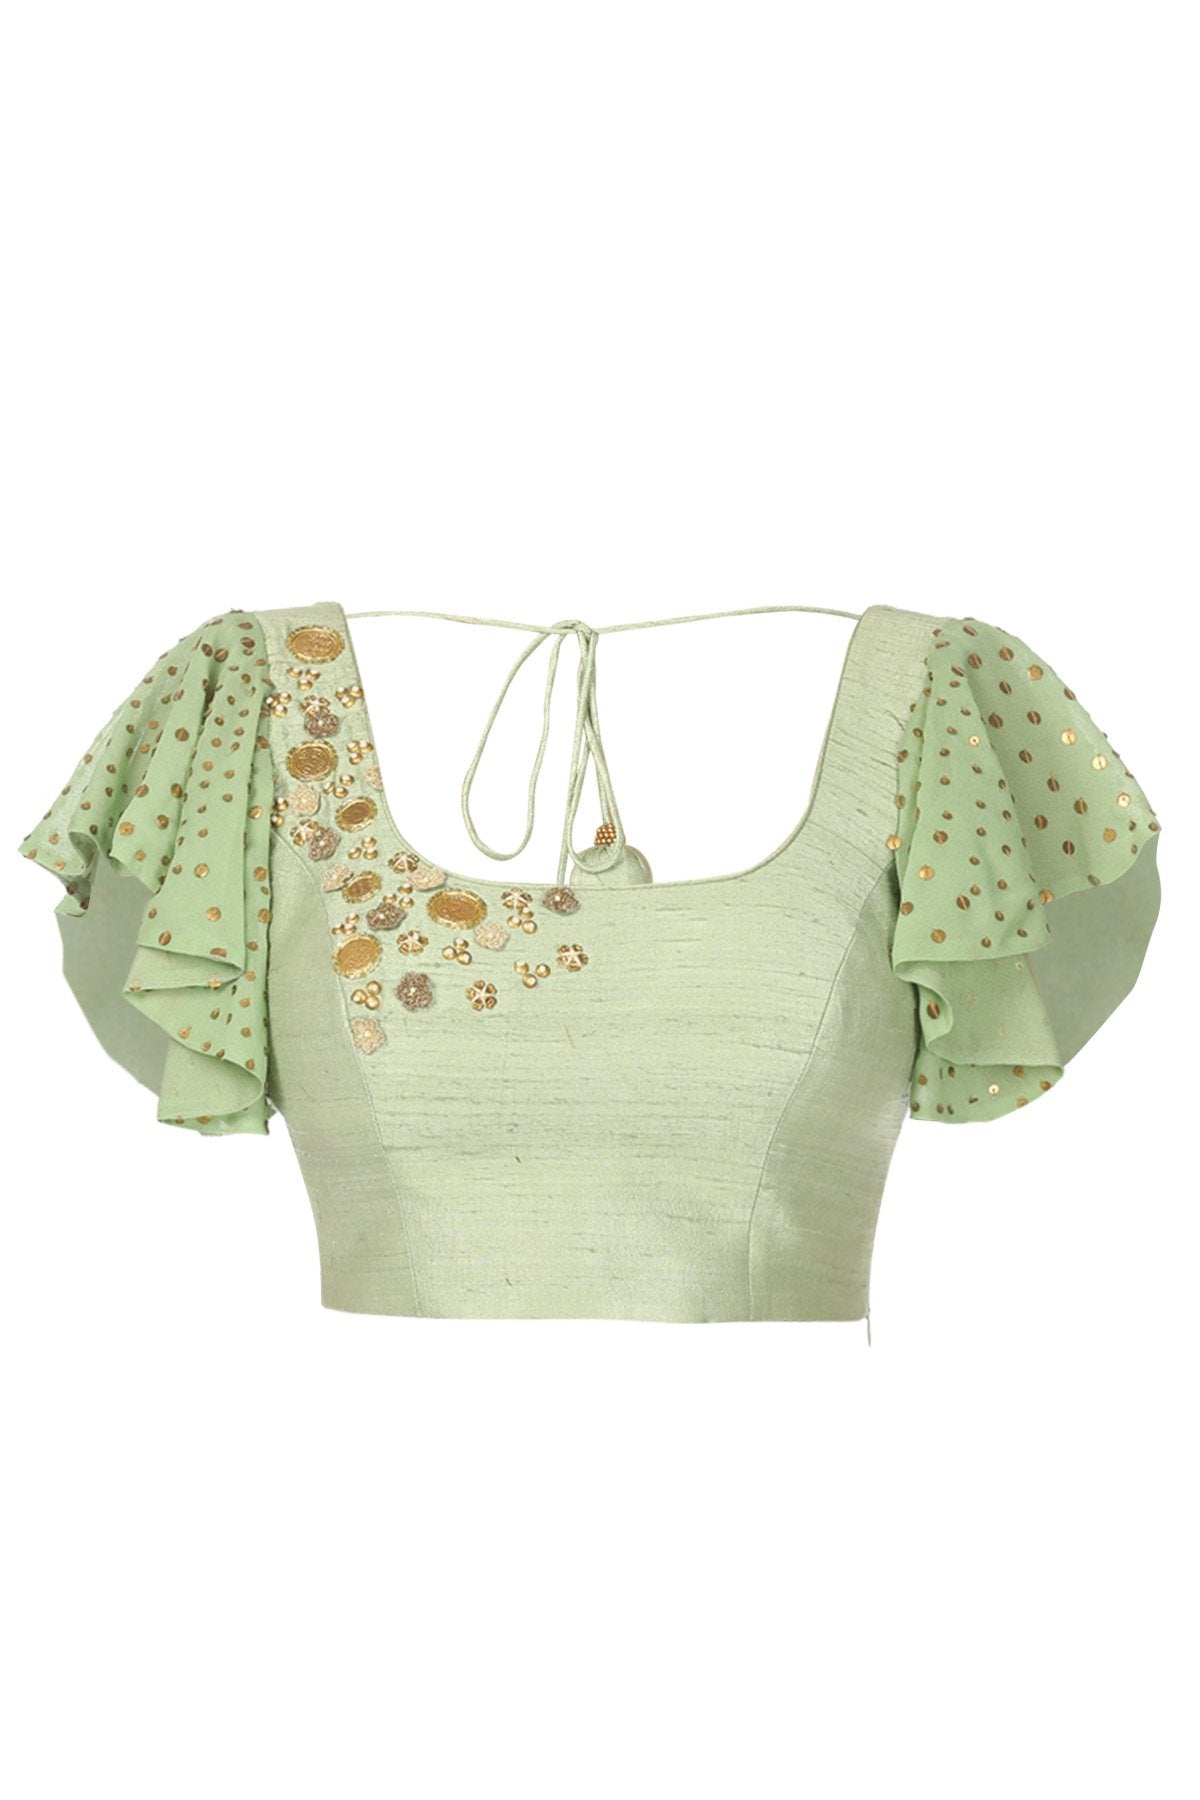 Ready-Made Pastel green blouse